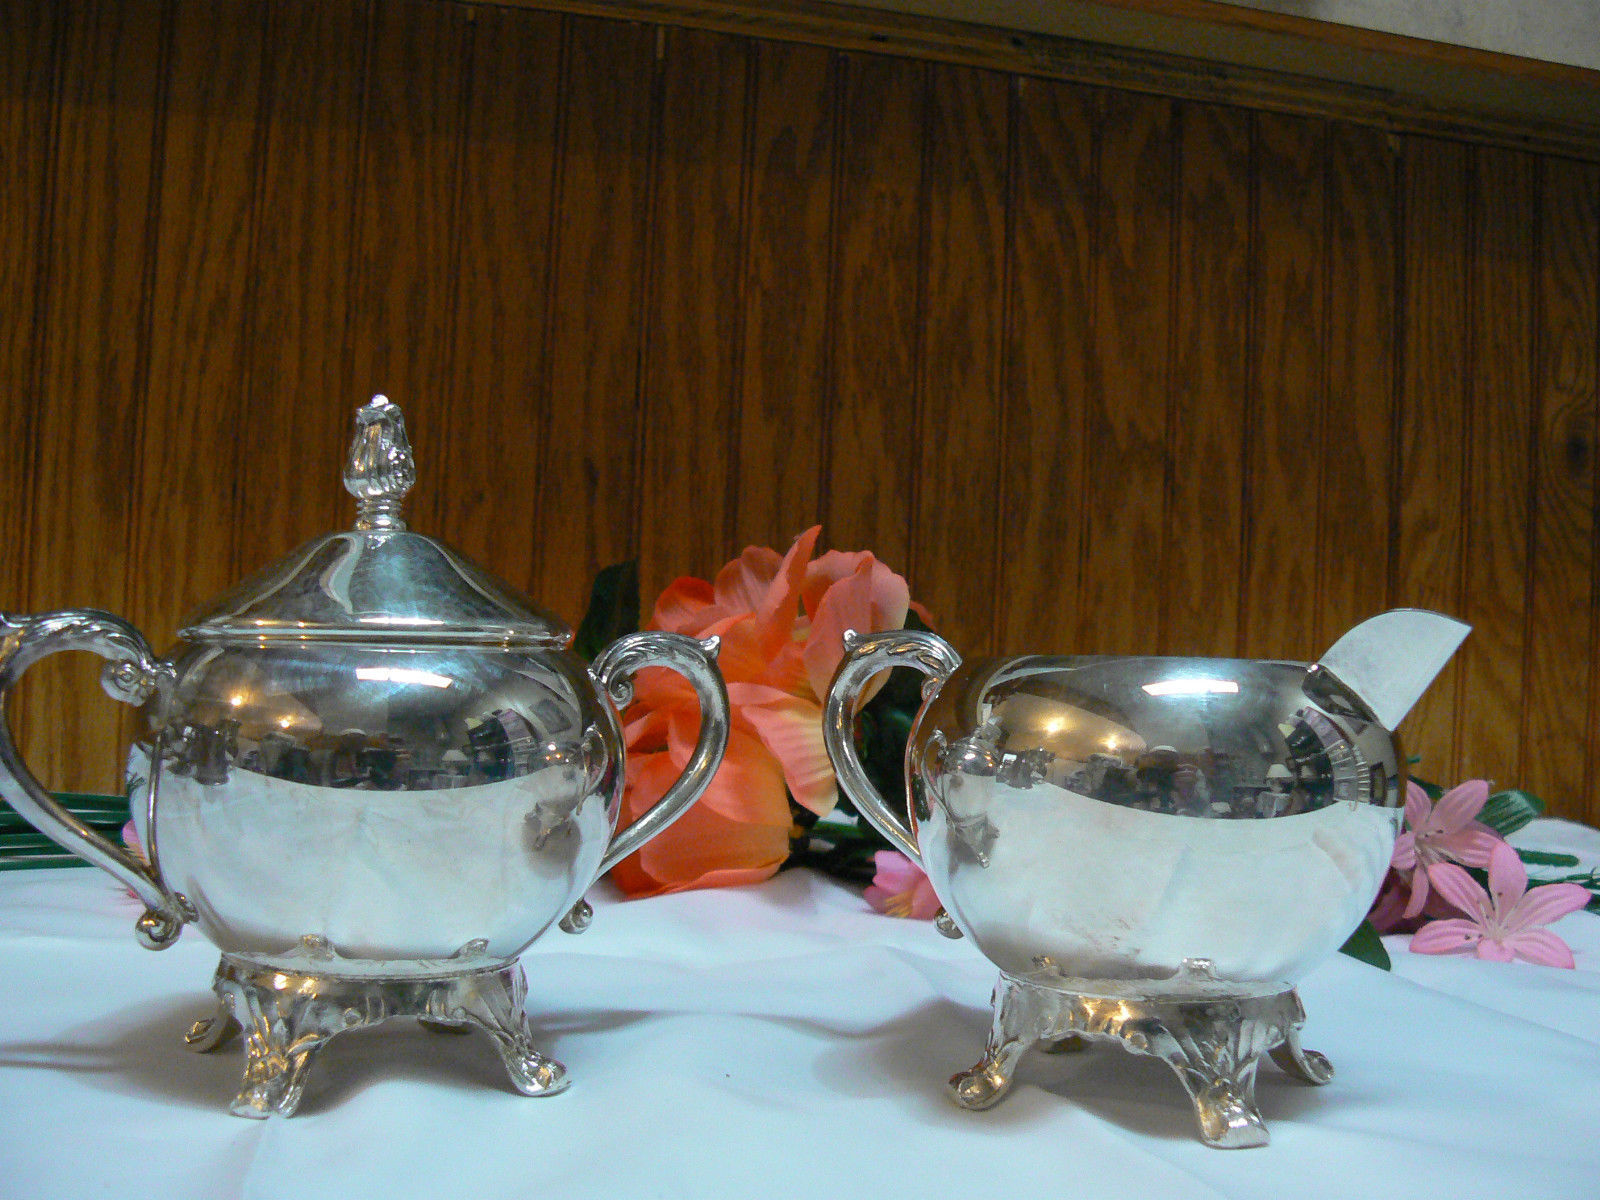 Antique/Vintage F.B. Rogers Silver Co. Silverplate Creamer & Covered Sugar Bowl